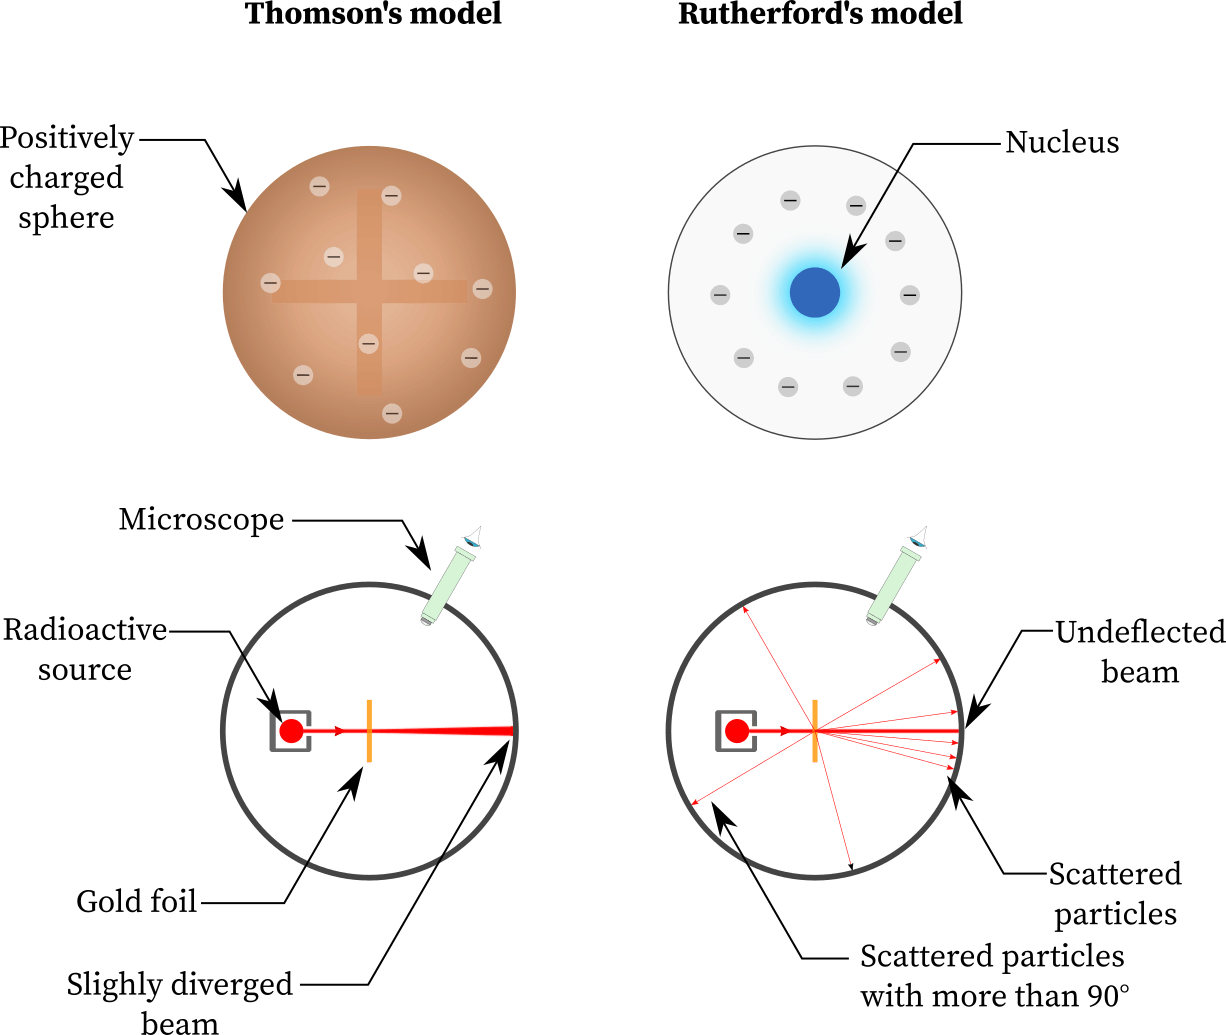 Thomson vs Rutherford atomic model